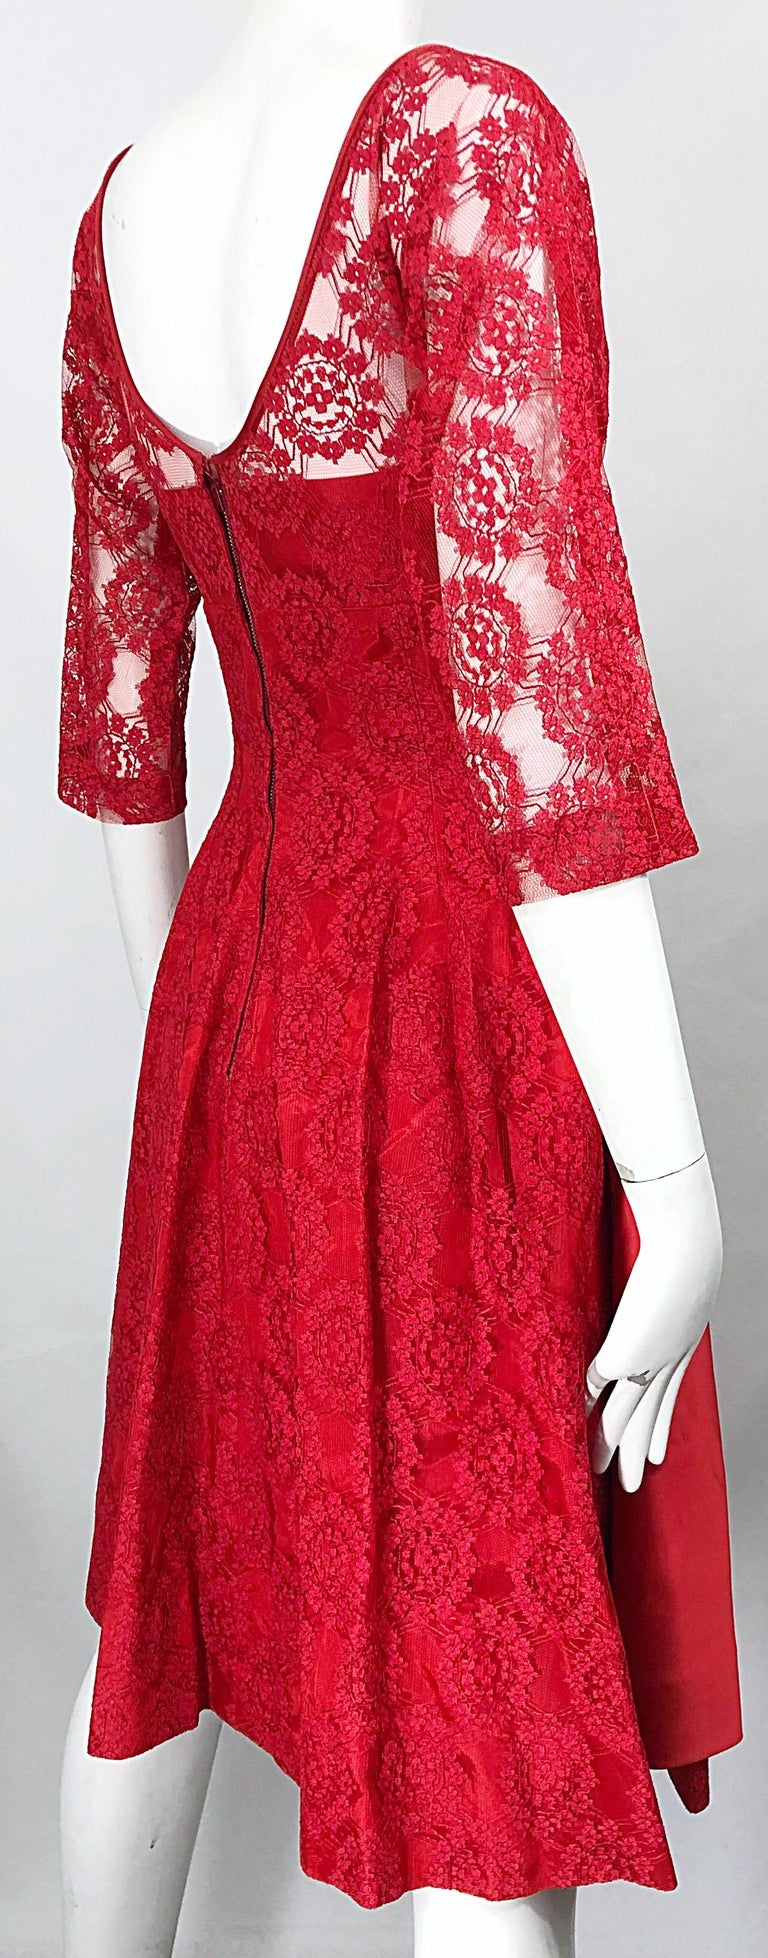 1950s Demi Couture Lips Stick Red Silk Lace 3/4 Sleeve Vintage 50s Dress For Sale 9